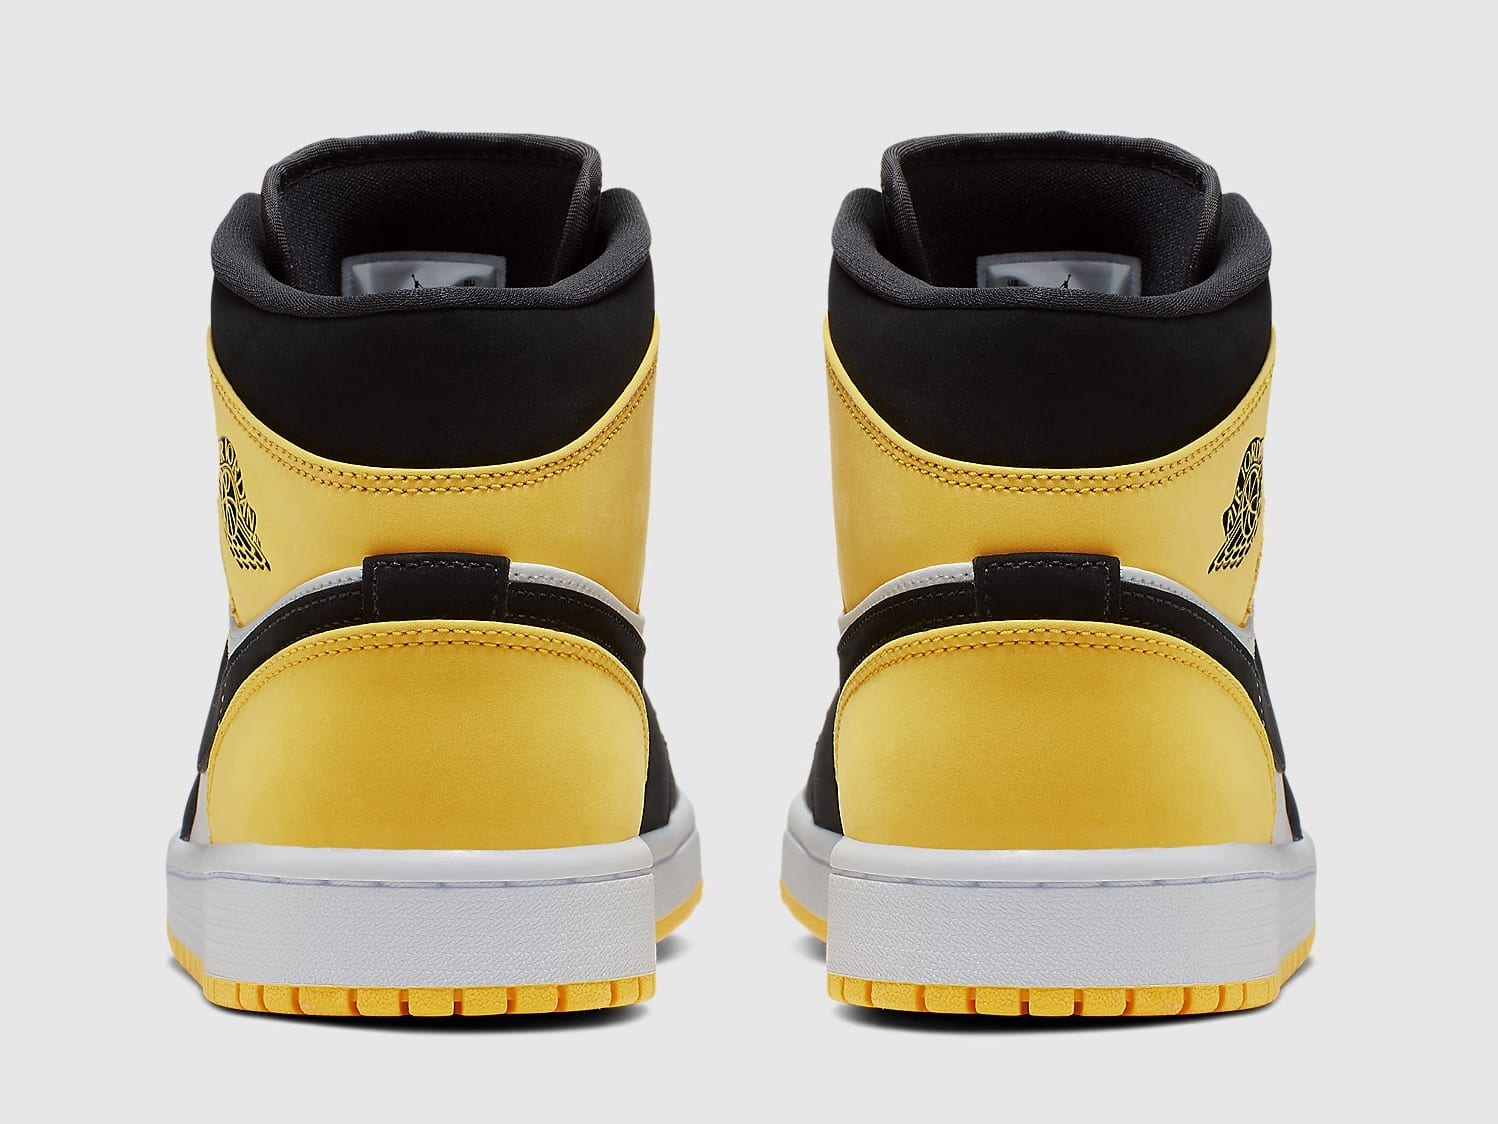 Air Jordan 1 Mid Yellow Toe Release Date 852542-071 Heel